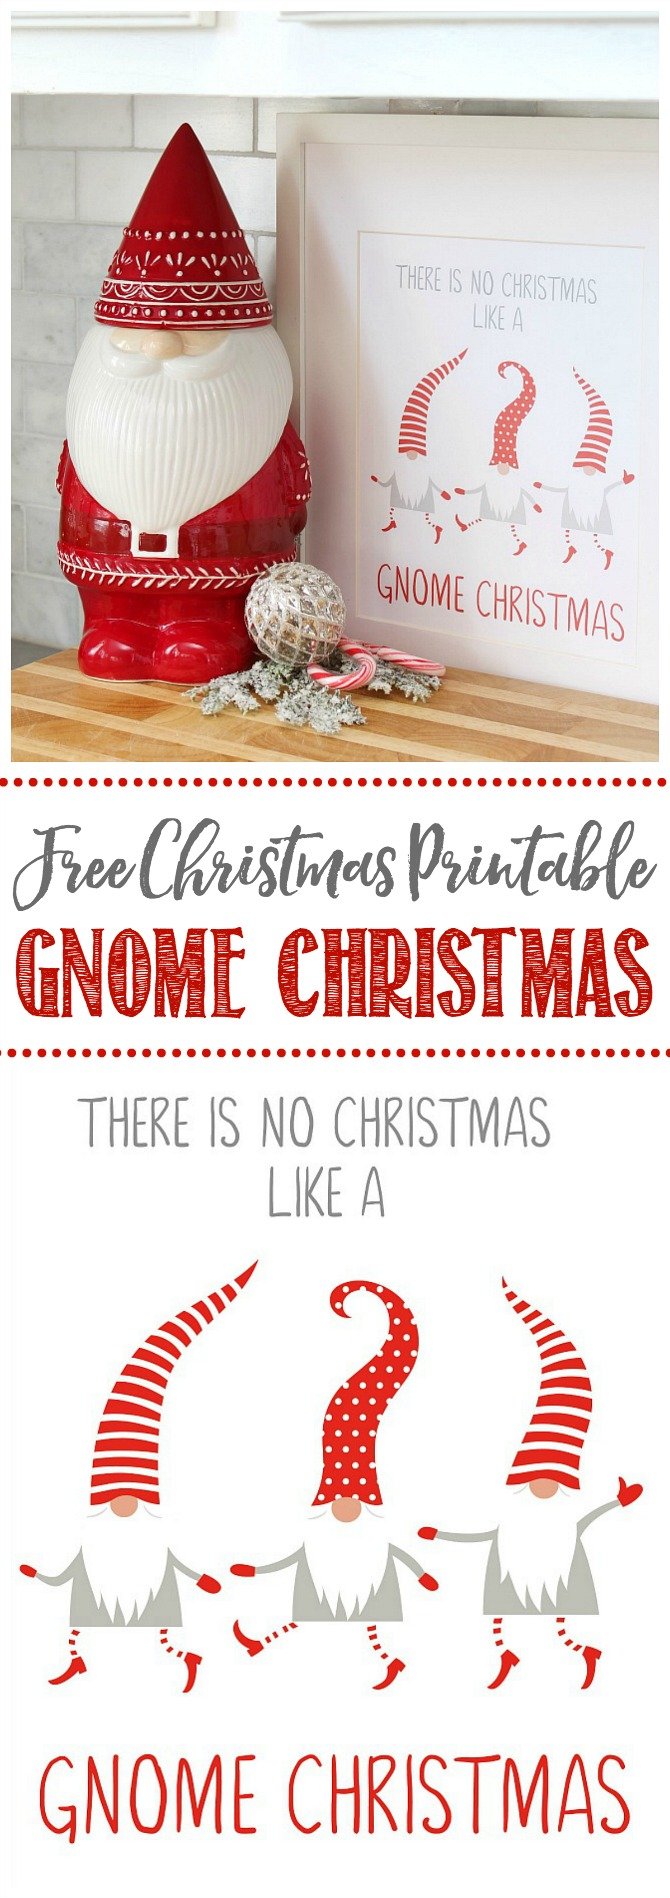 Free Christmas Gnome Printable.